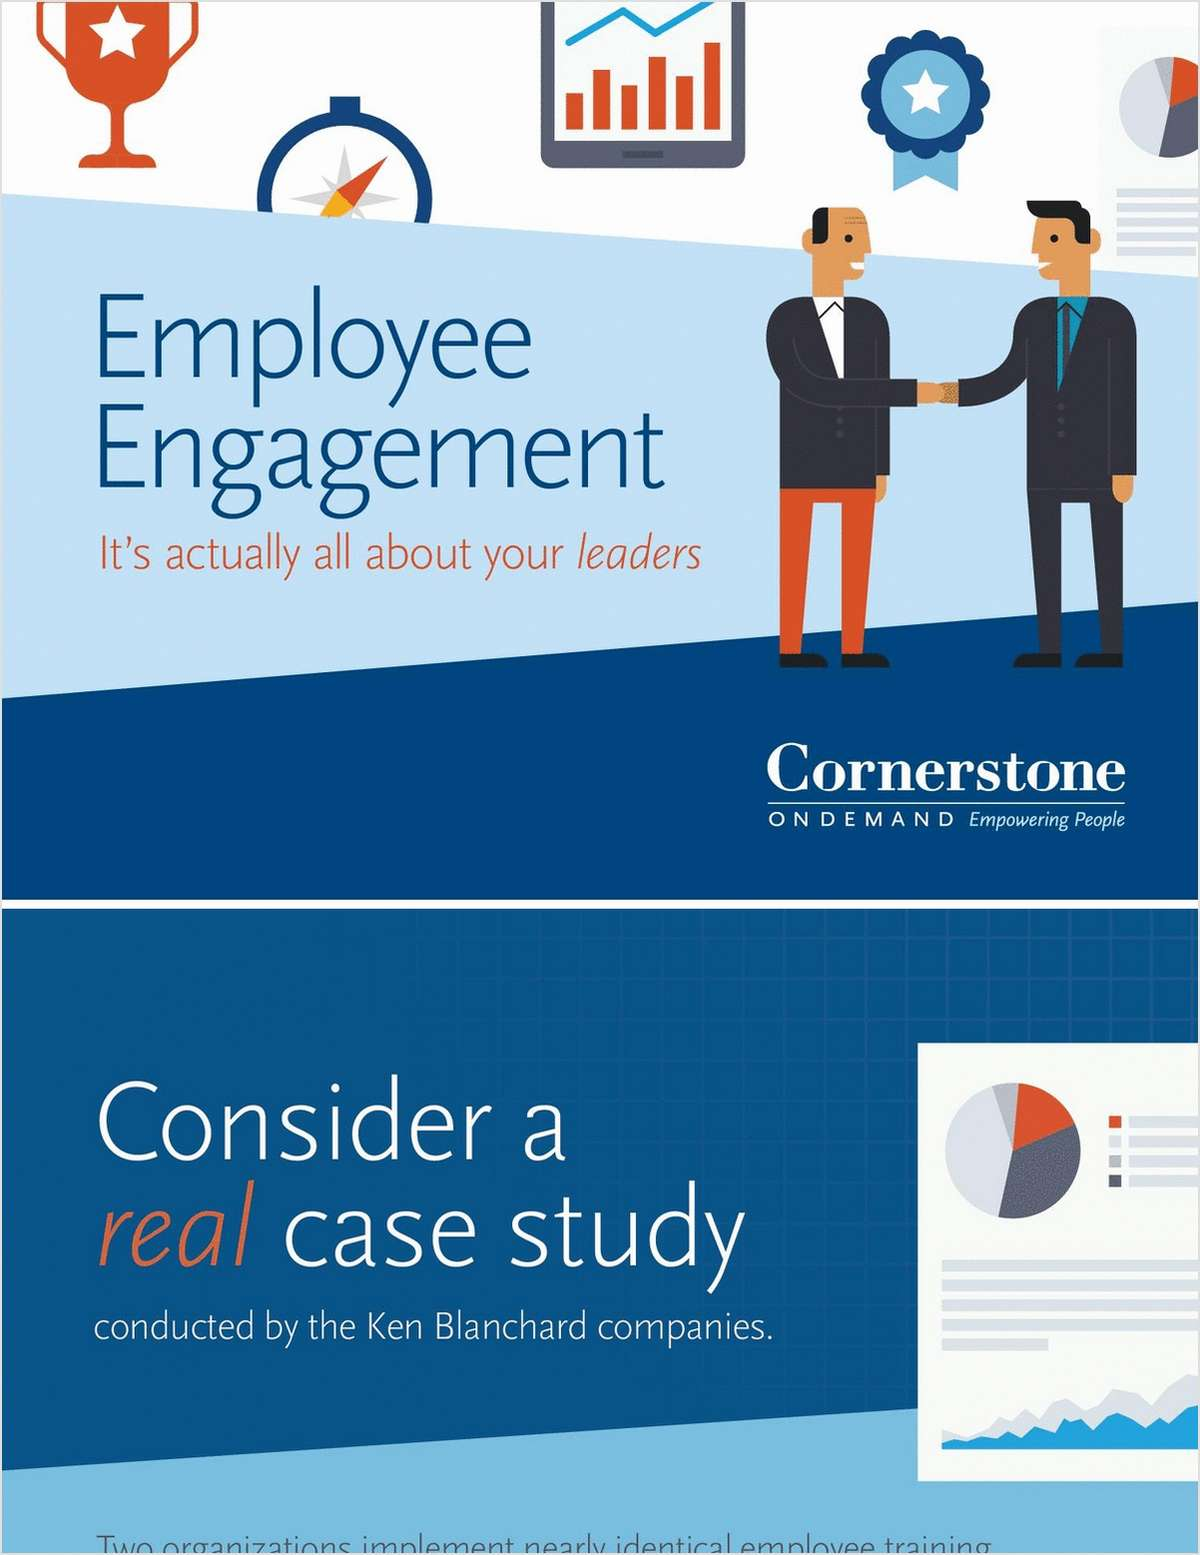 Employee Engagement - It's Actually All About Your Leaders